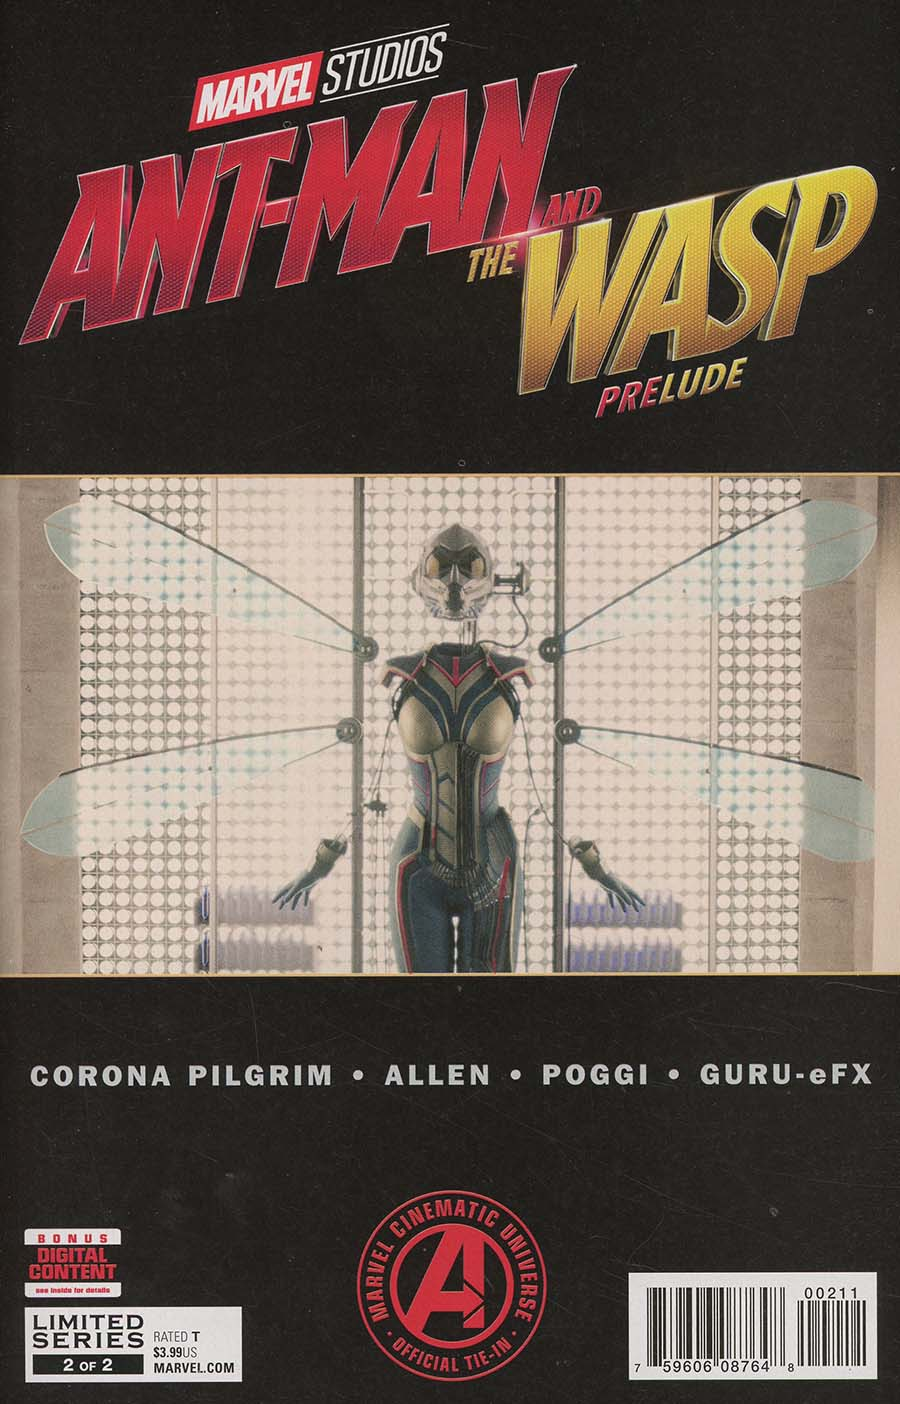 Marvels Ant-Man And The Wasp Prelude #2